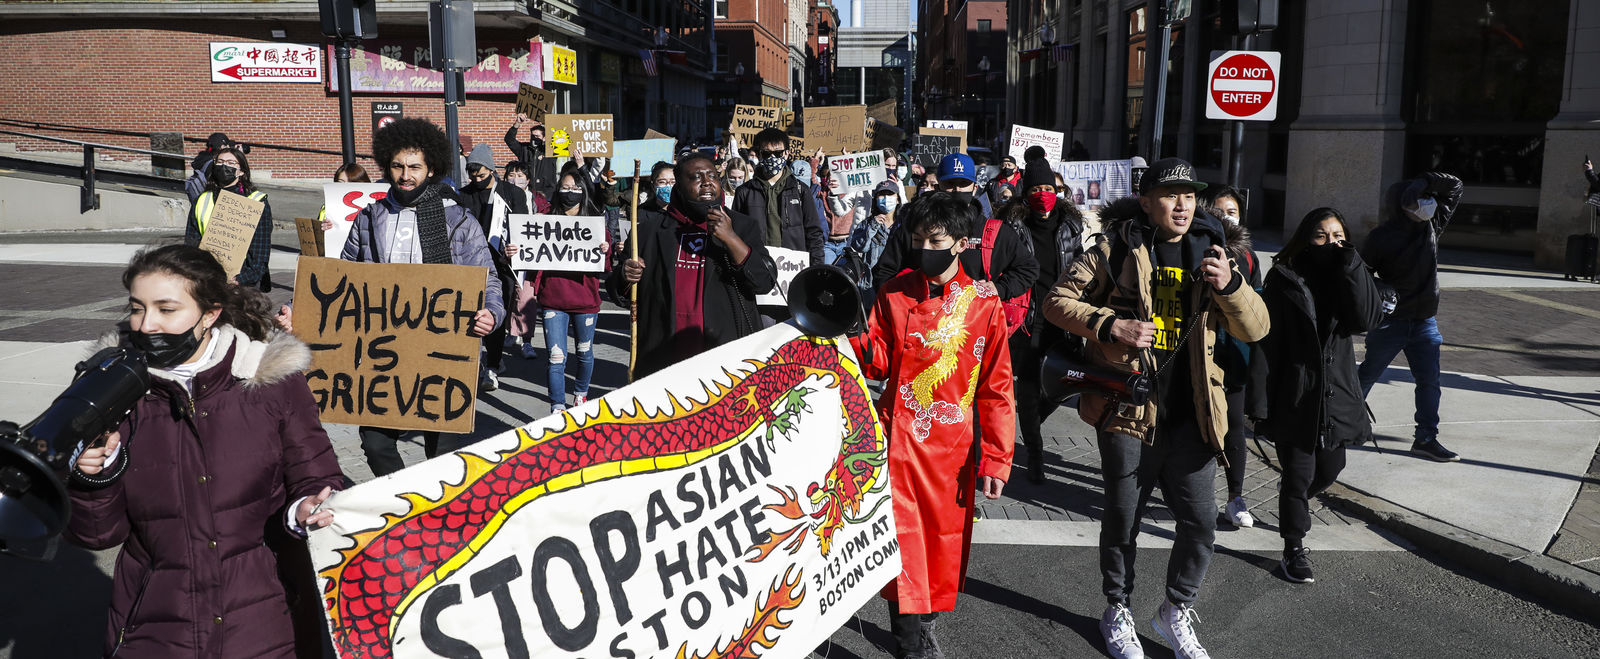 Young people protest anti-Asian violence in Boston.